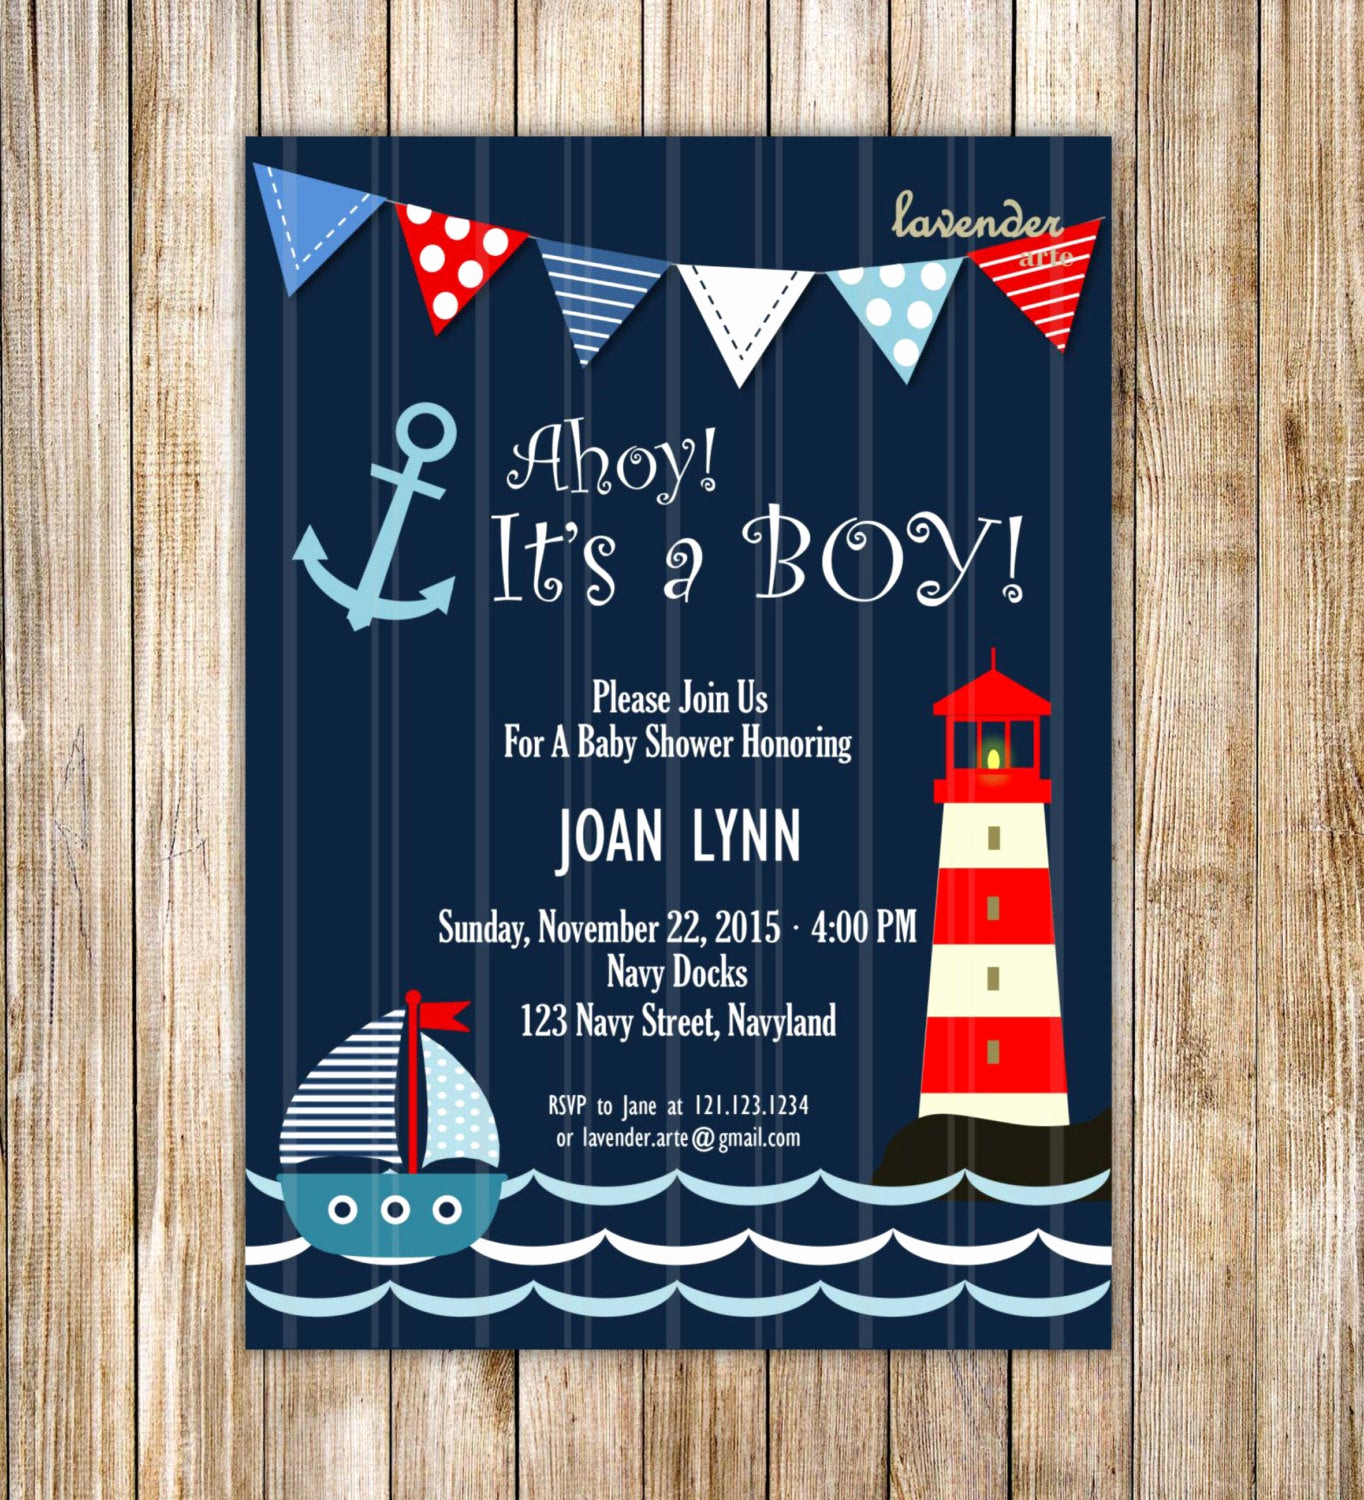 Nautical Baby Shower Invitation Templates Elegant Navy Nautical Baby Shower Invitation Ahoy It S A Boy